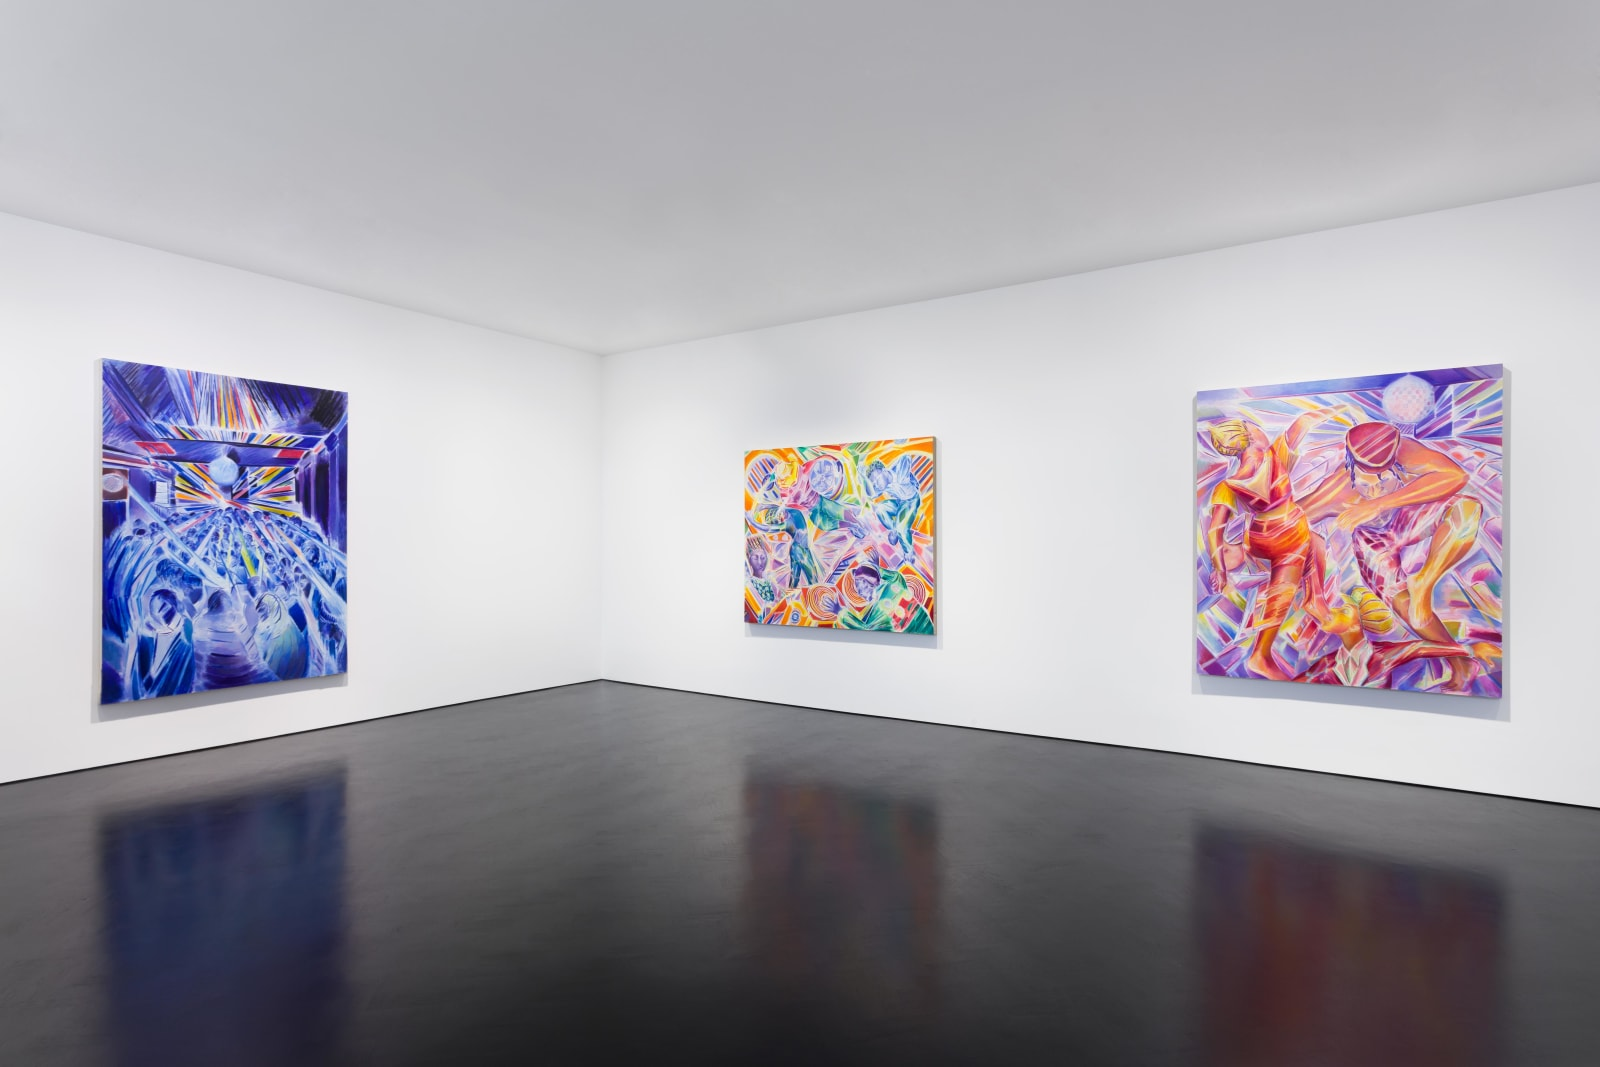 <p>Installation view: 'A Survey', Stephen Friedman Gallery, London (2019).</p>